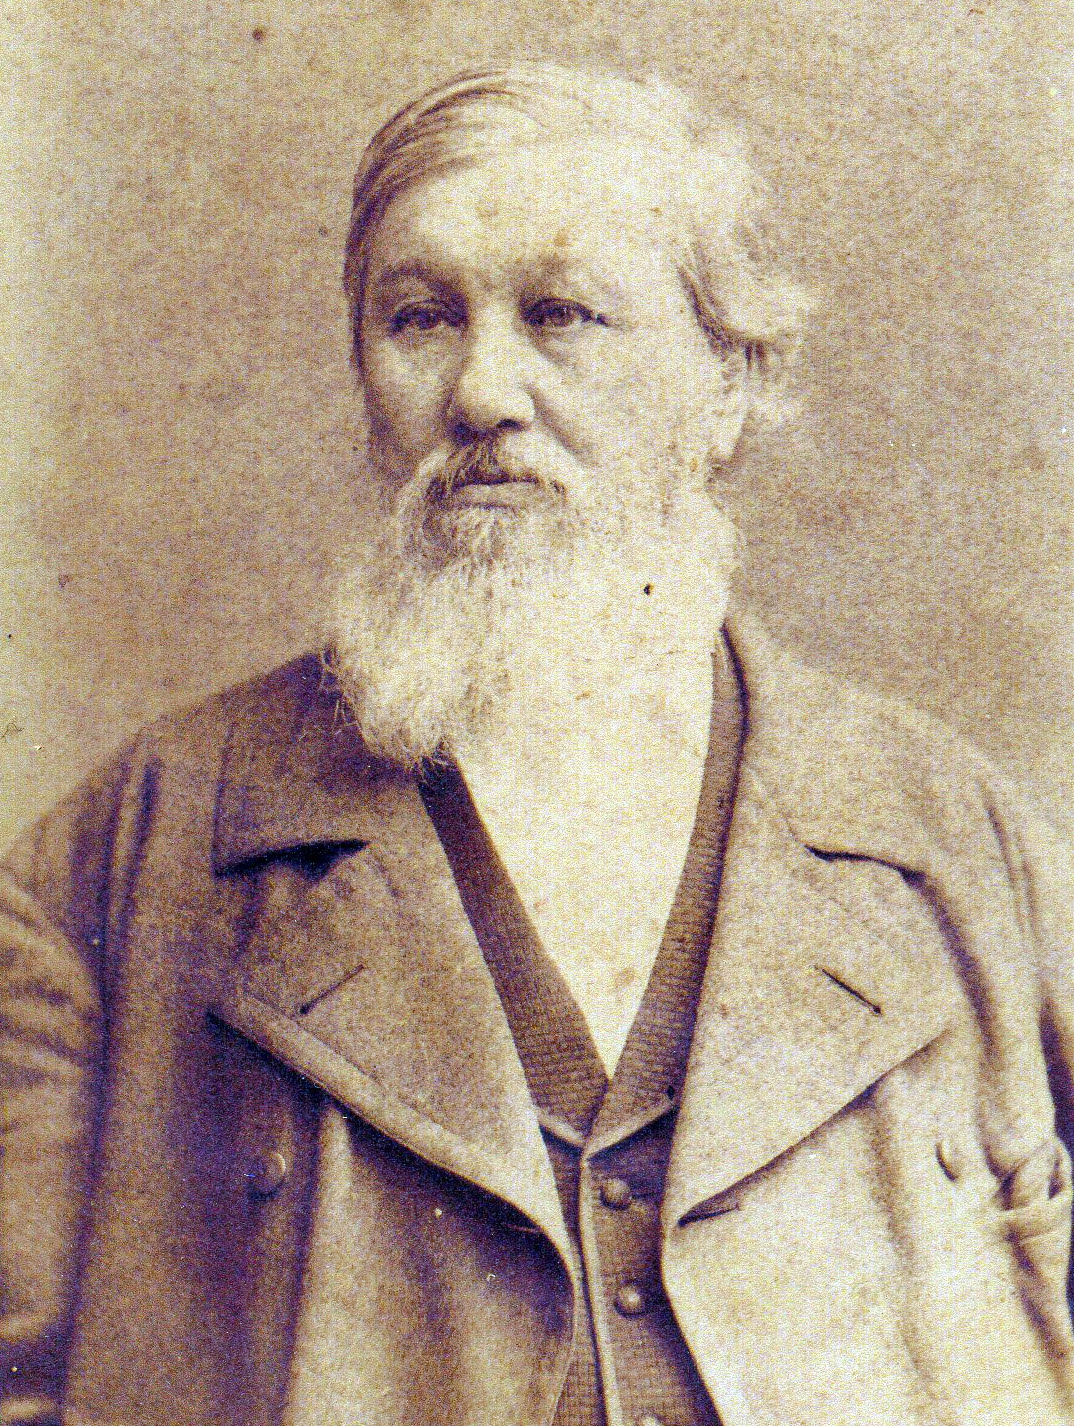 http://upload.wikimedia.org/wikipedia/commons/6/64/Nikolay_Danilevski.jpg